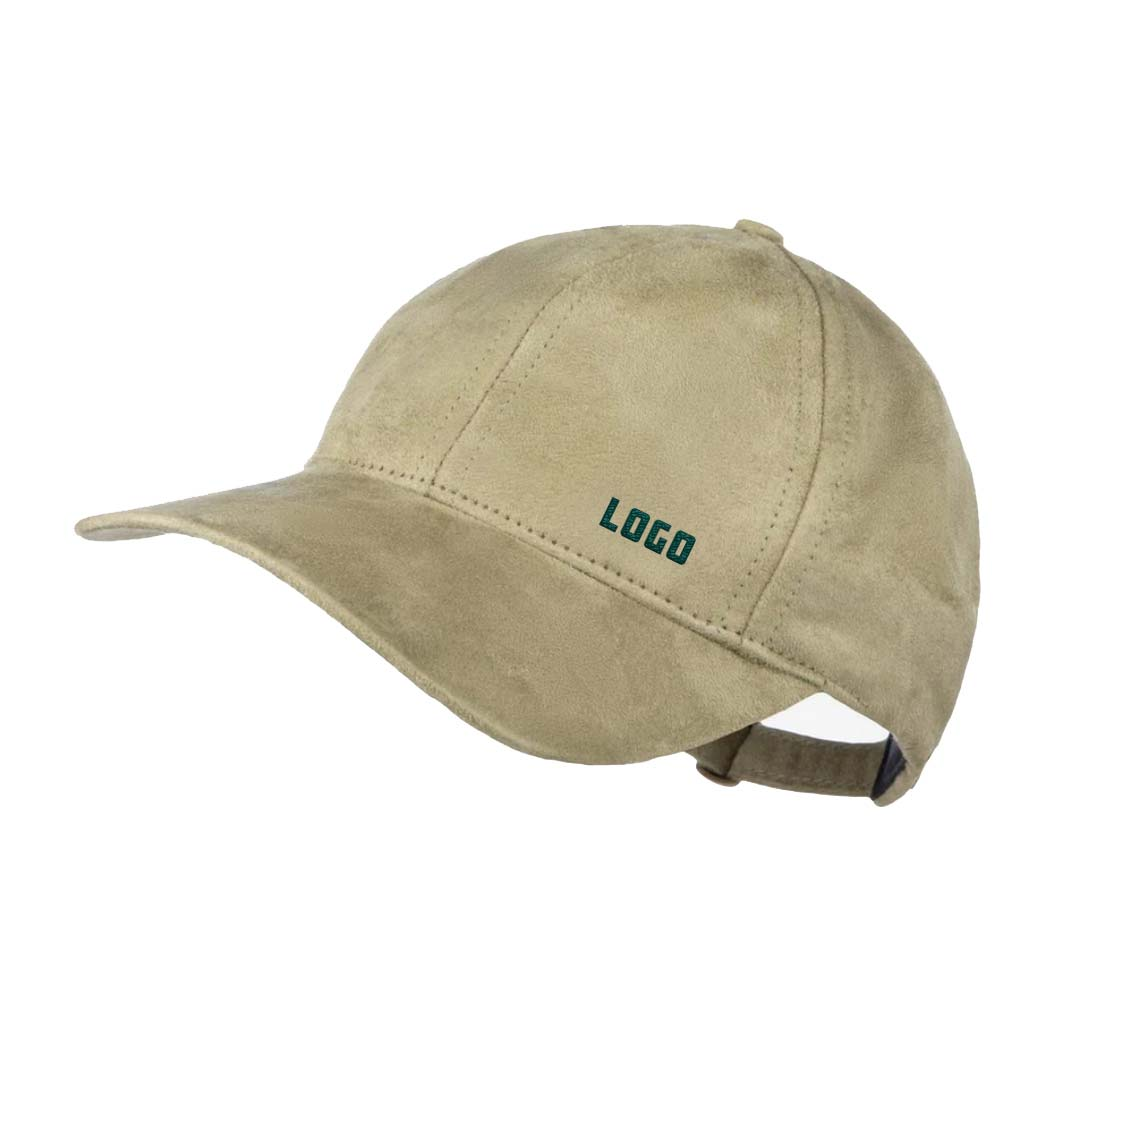 350992 suede cap one location embroidery up to 5 000 stitches